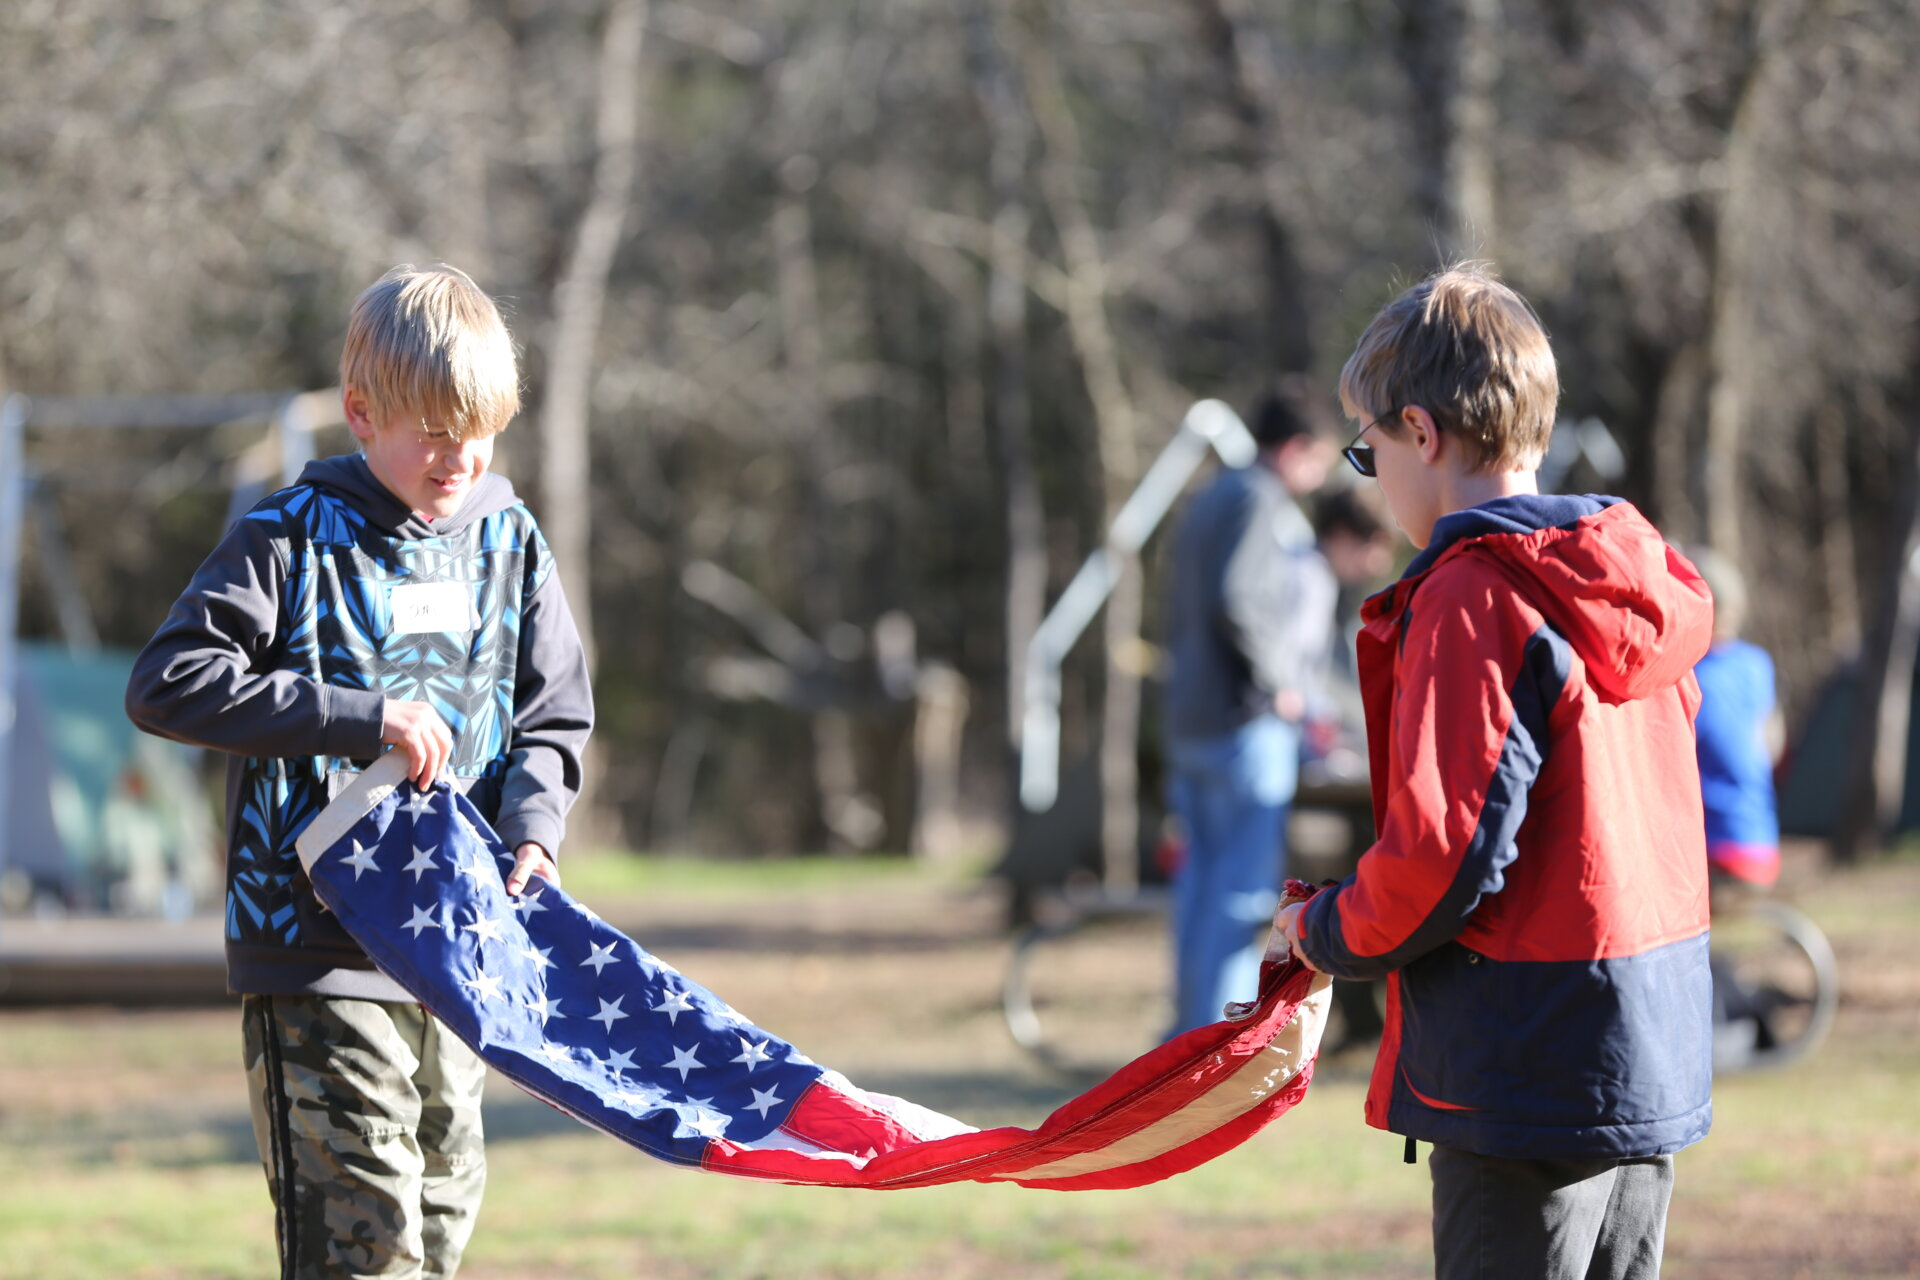 Raising the Flag at a Campout